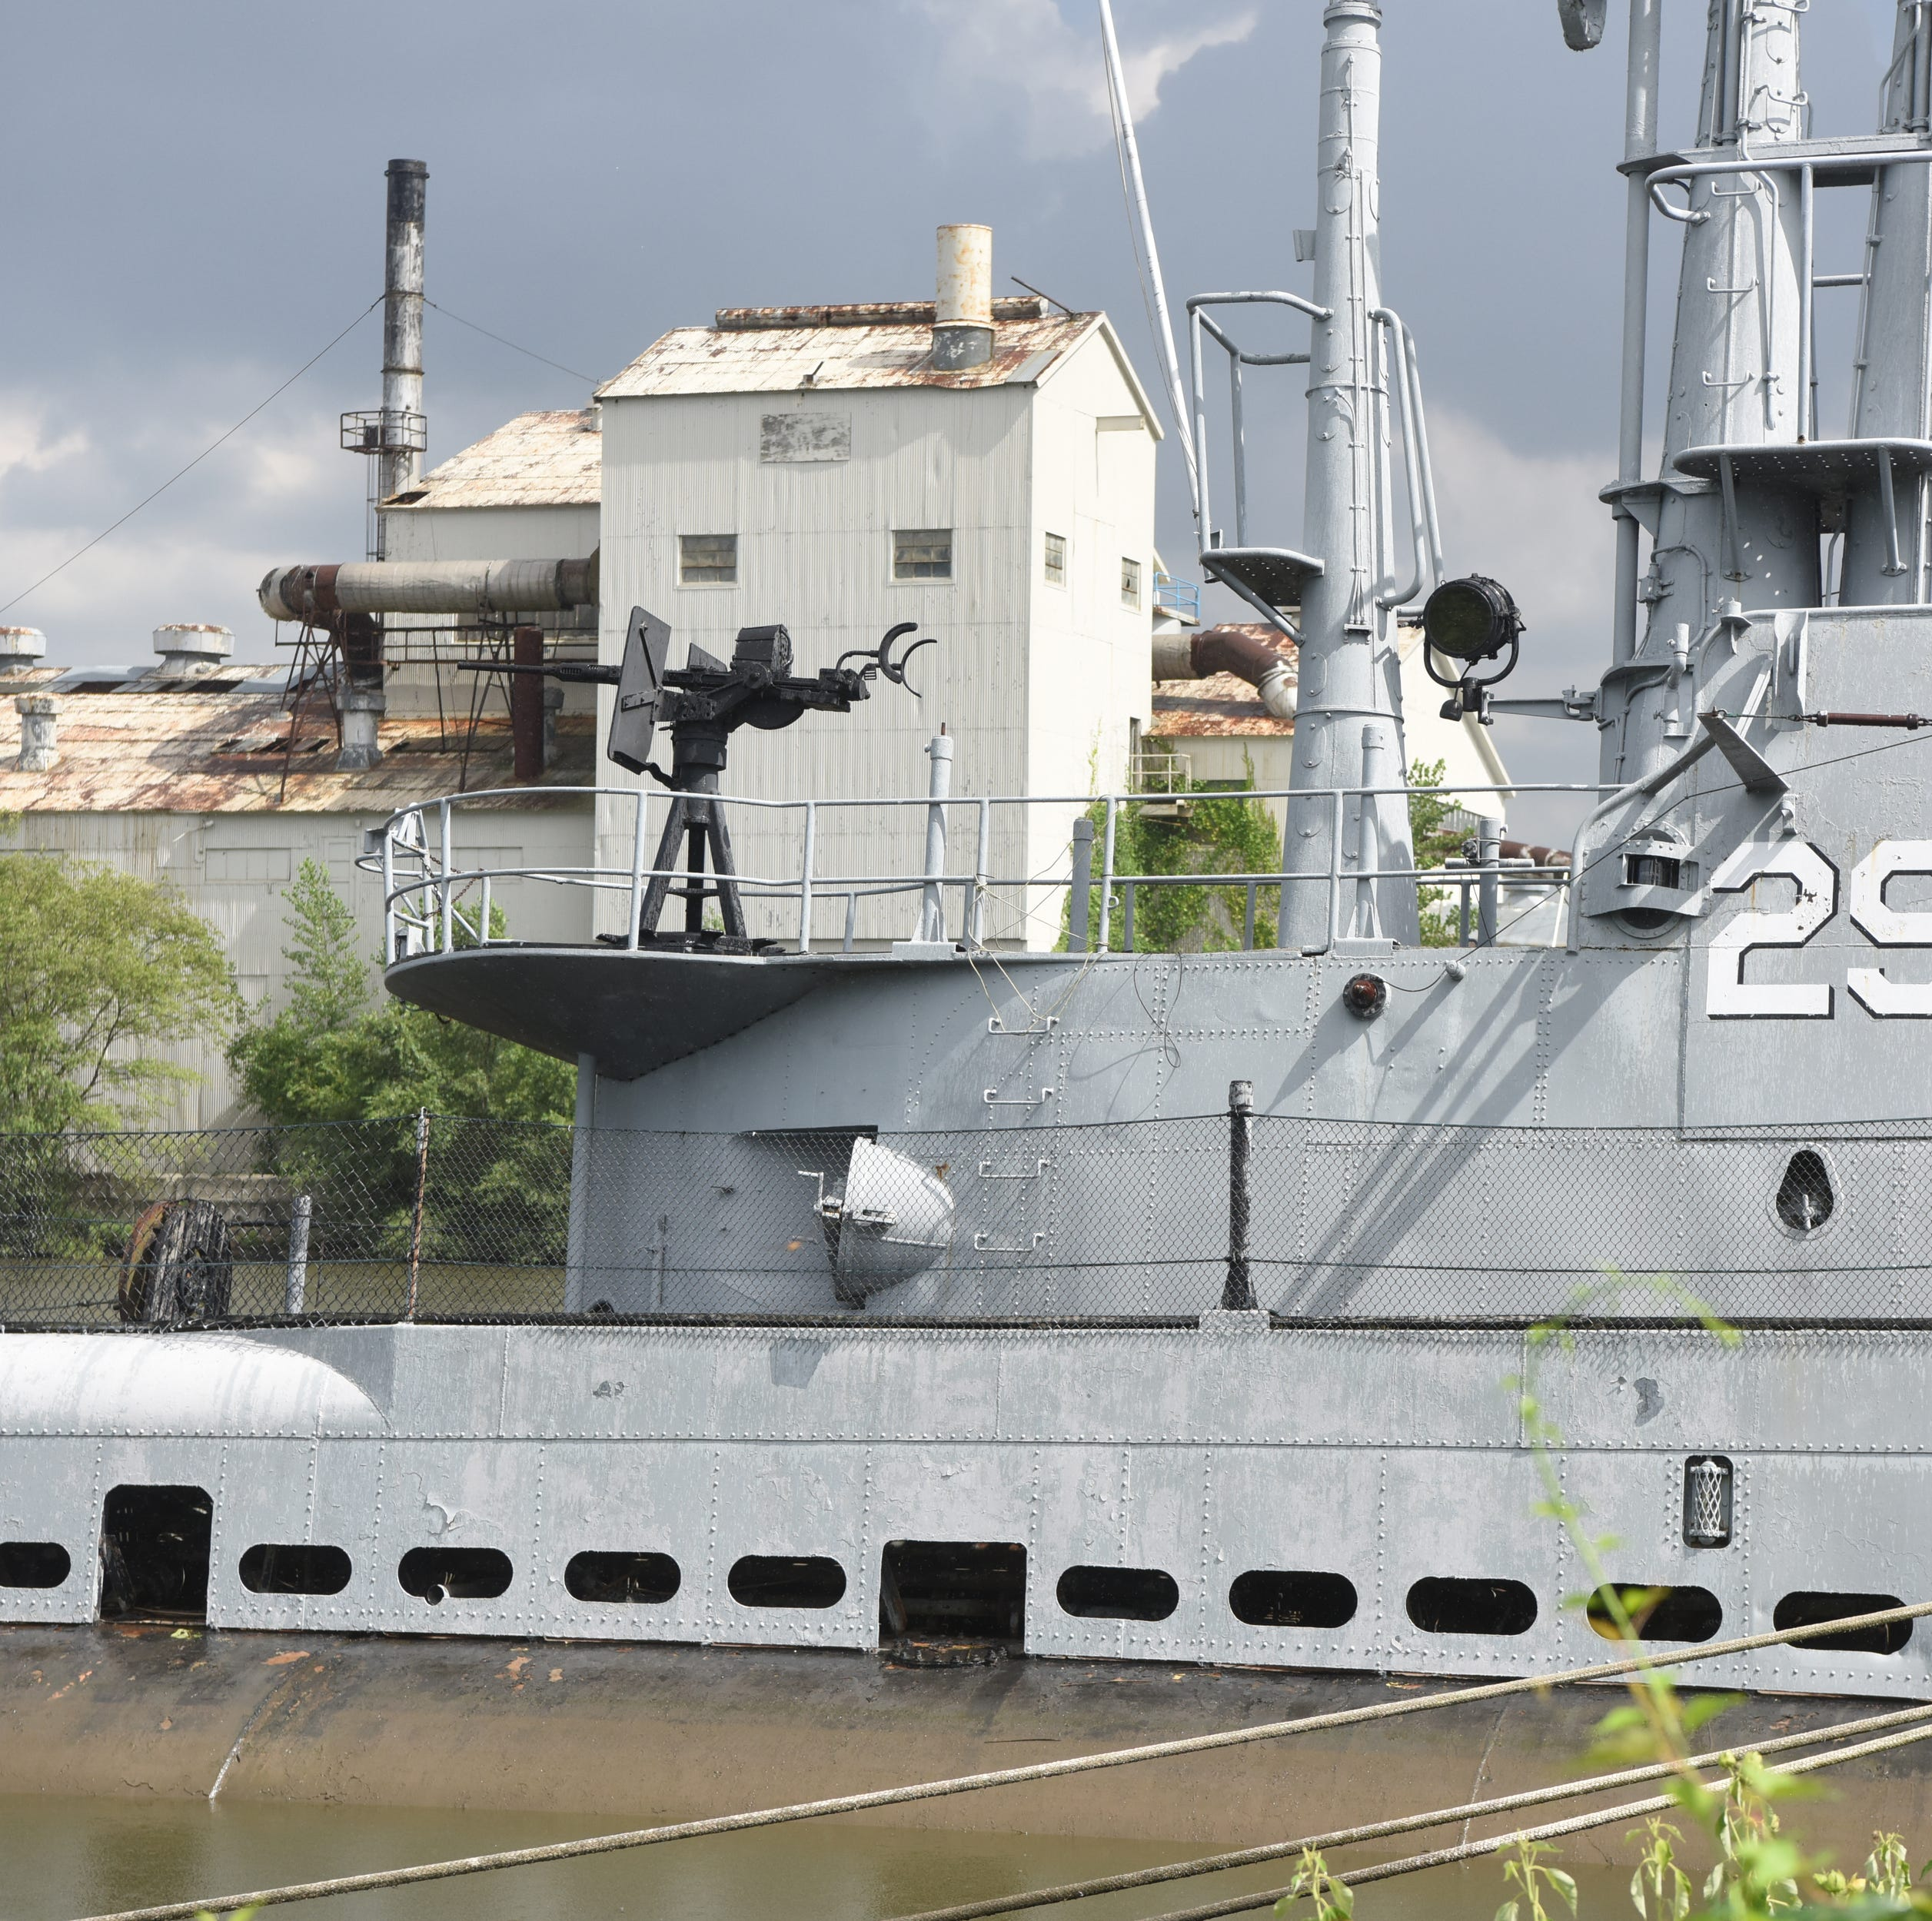 Hackensack submarine USS Ling apparently flooded intentionally, memorial plaques stolen